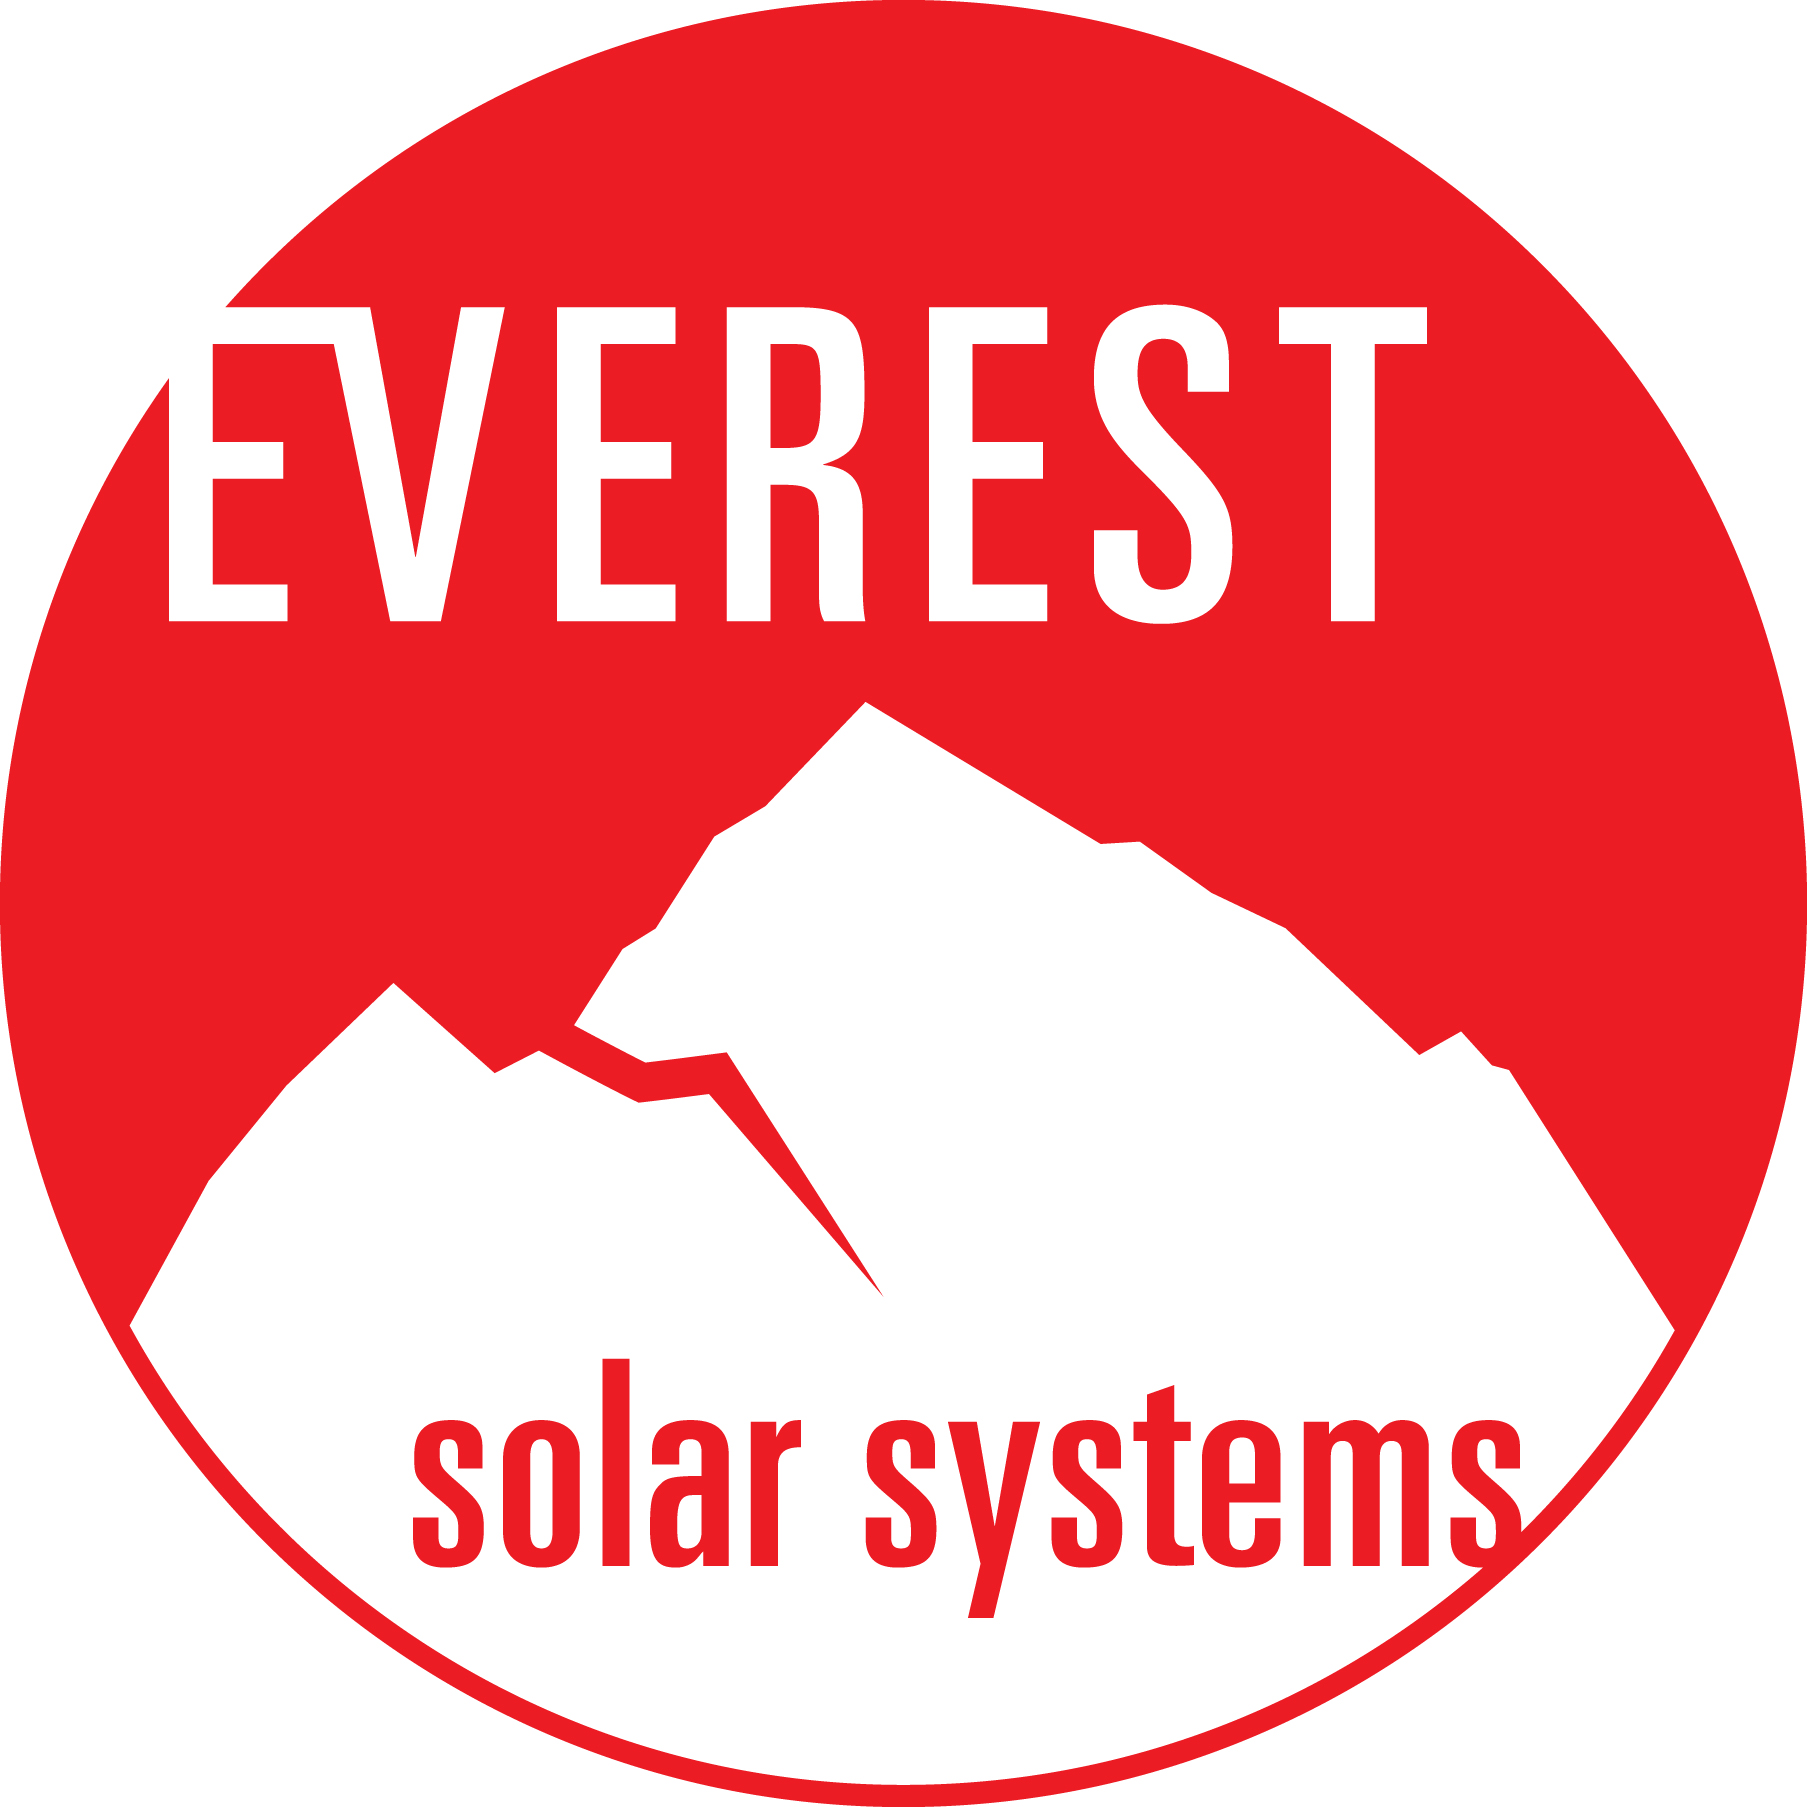 Everest Solar Systems, LLC - Oceanside , CA - Company Page